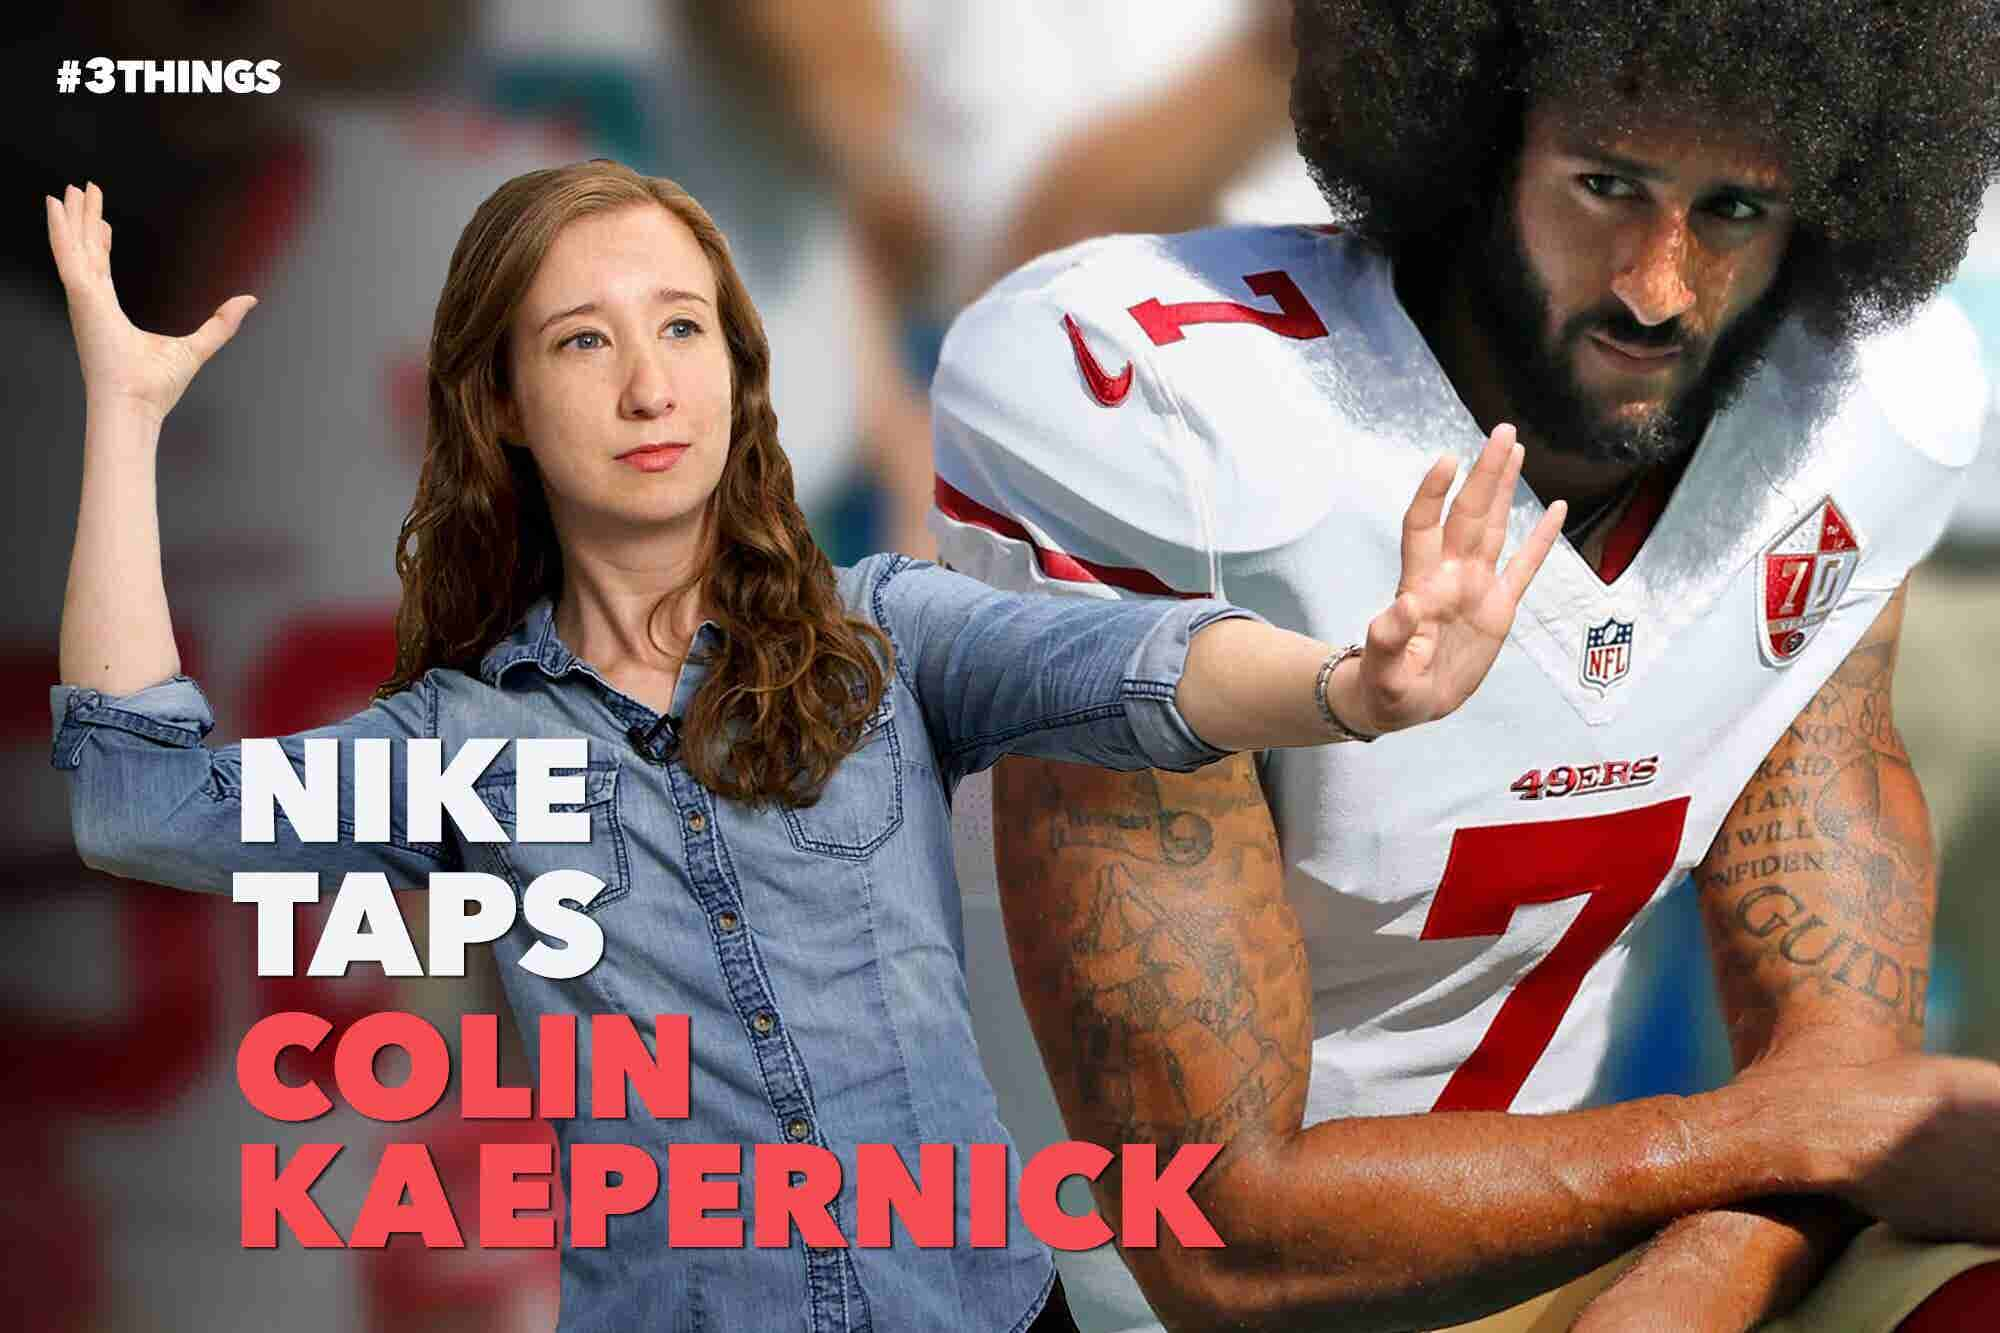 Nike Features Colin Kaepernick for 'Just Do It' Anniversary. 3 Things to Know Today.